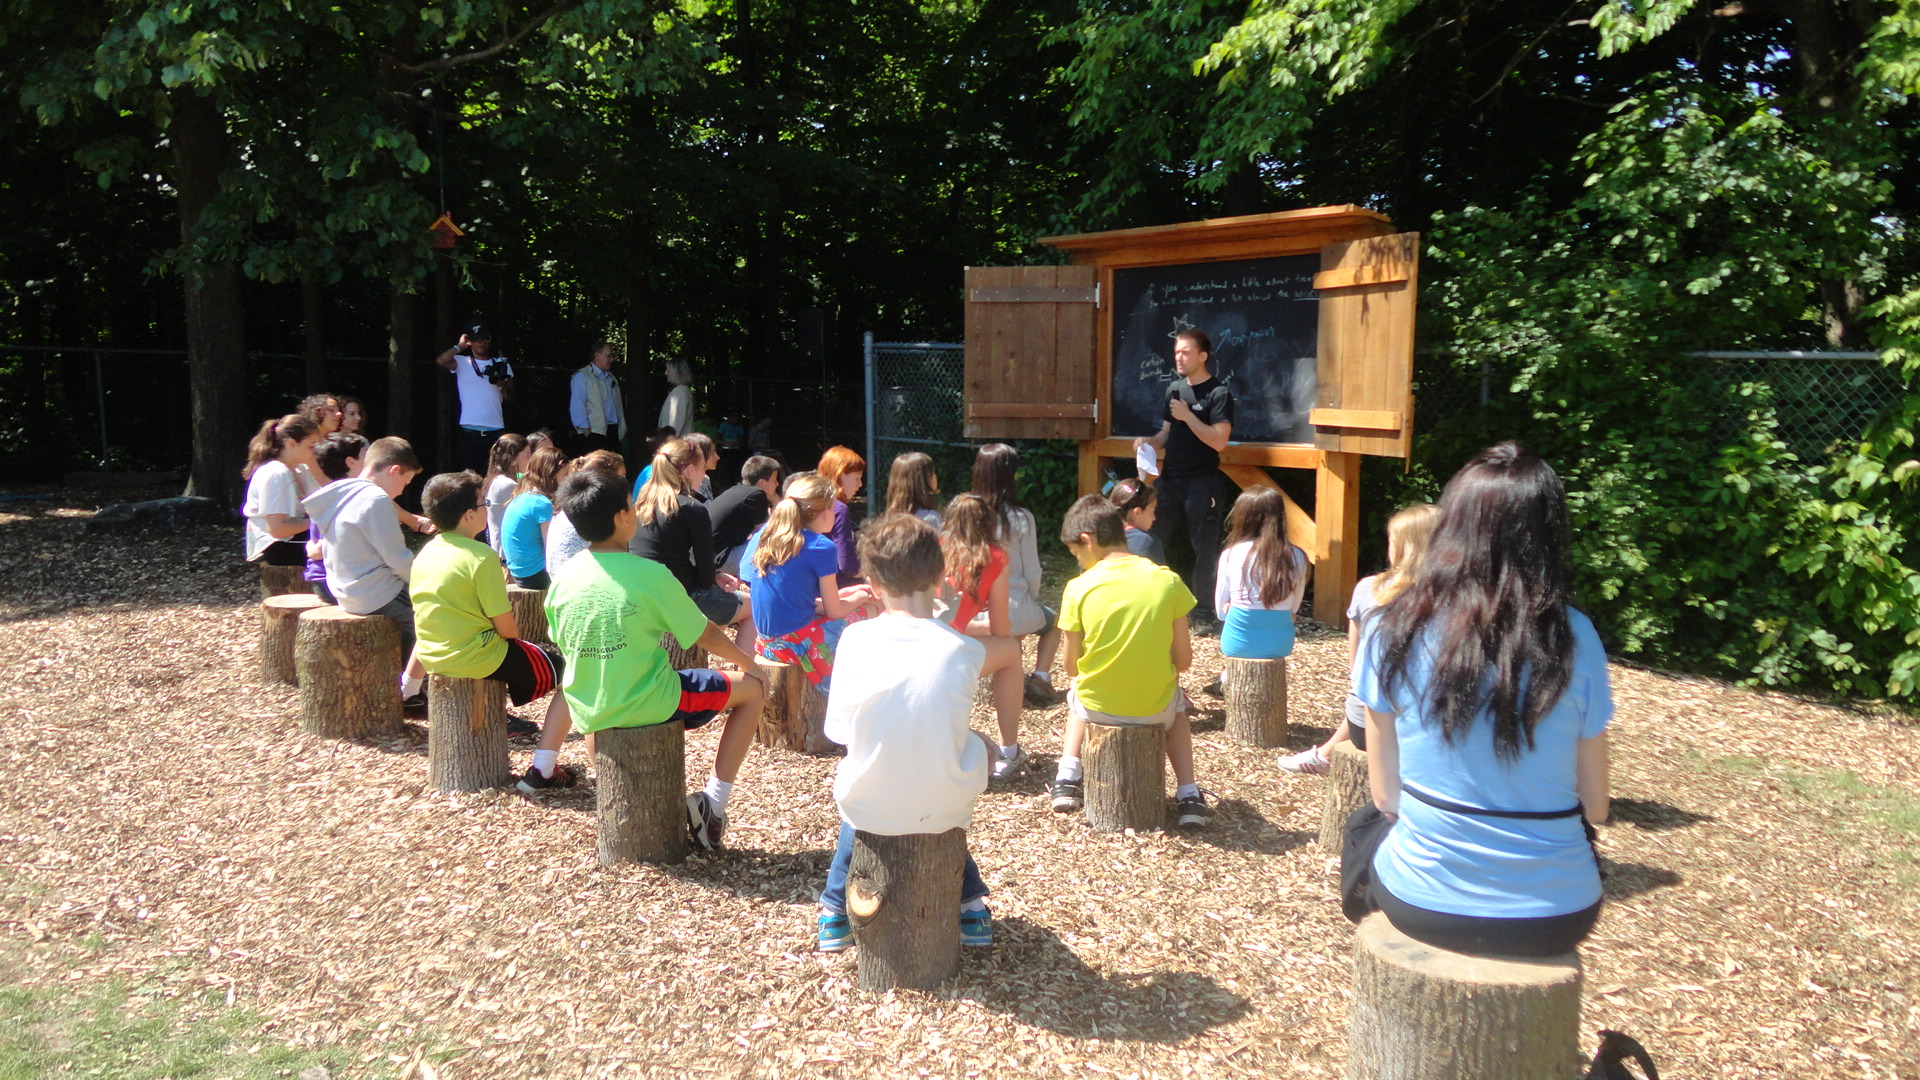 Outdoor Classroom Design ~ Contest designed to facilitate outdoor learning in schools